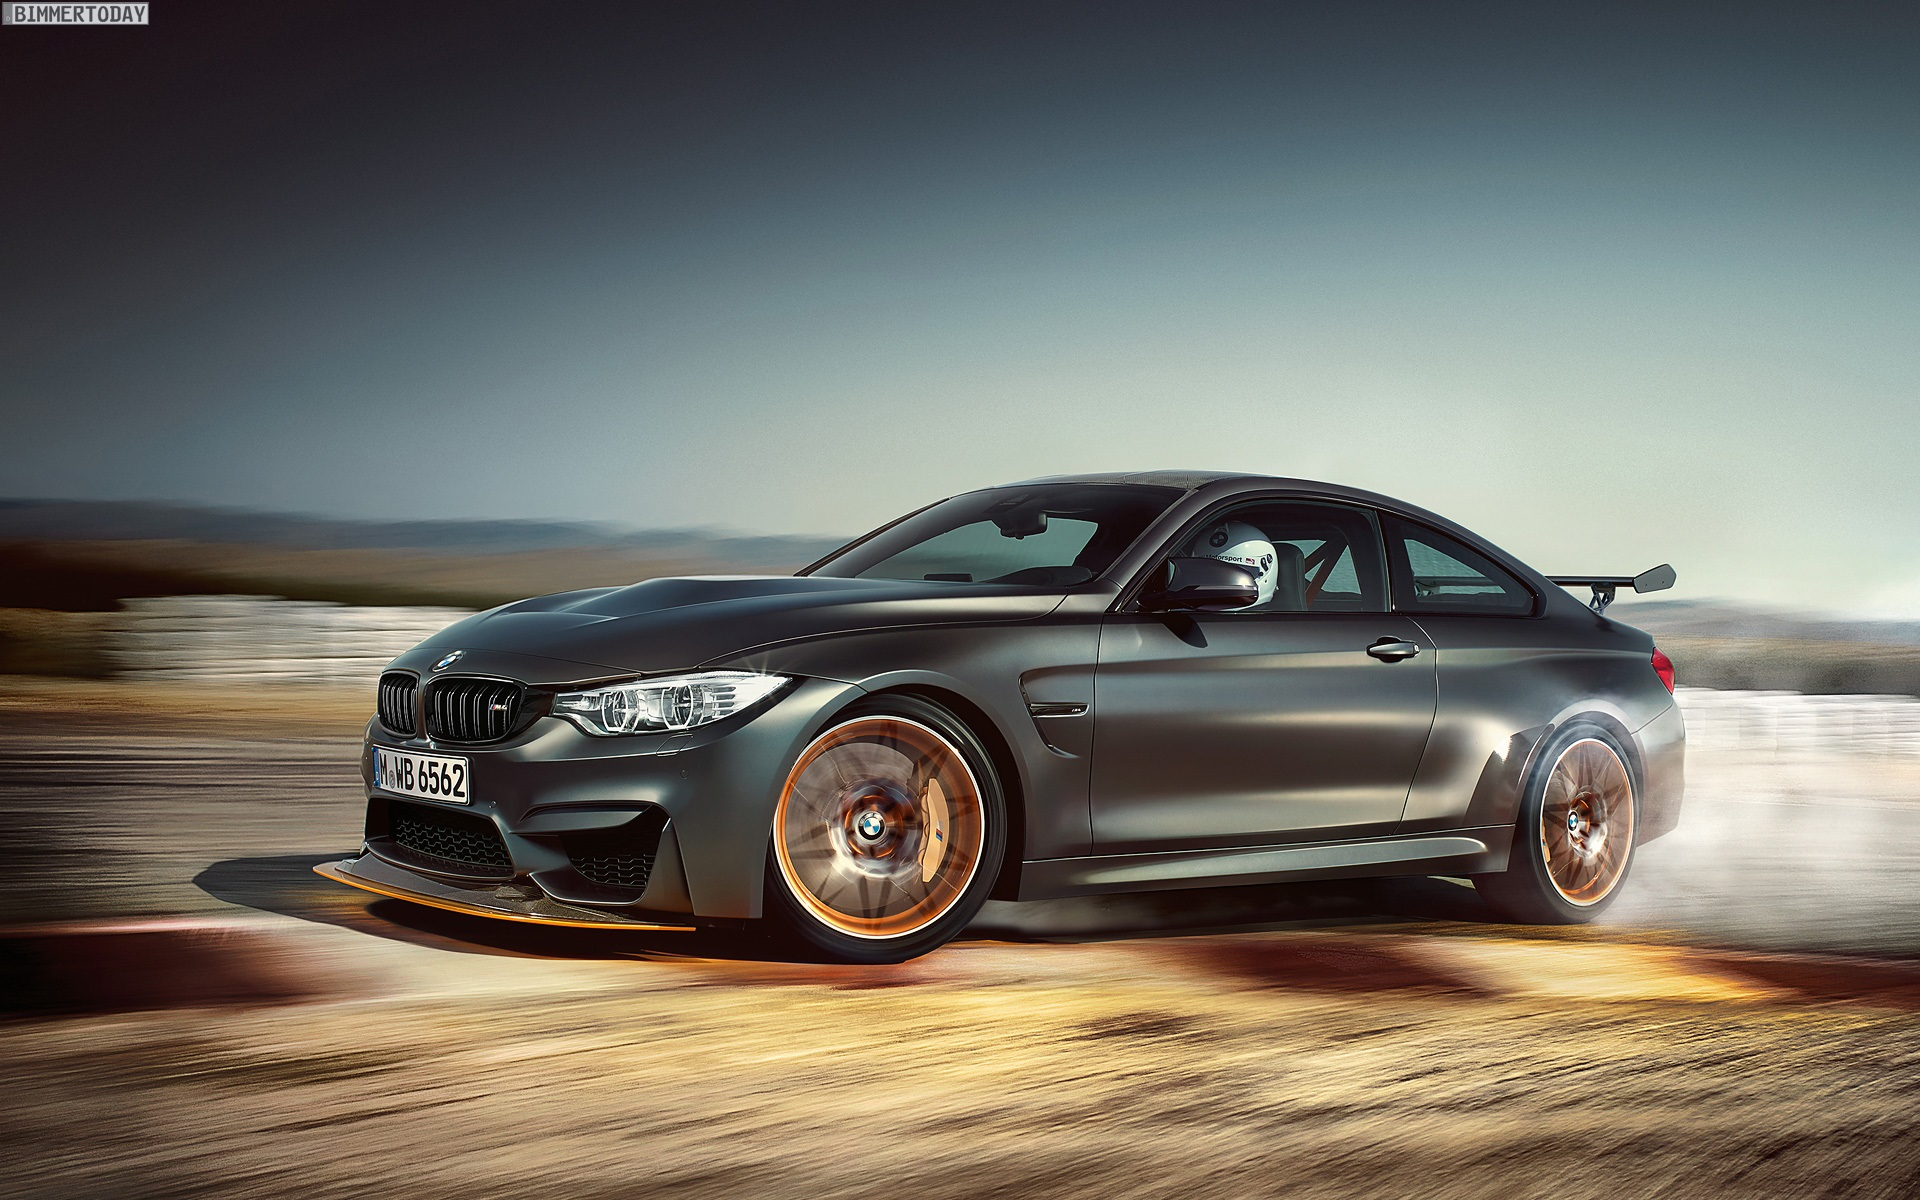 Bmw M4 Gts Wallpaper Motive In 1600x1200 Und 1920x1200